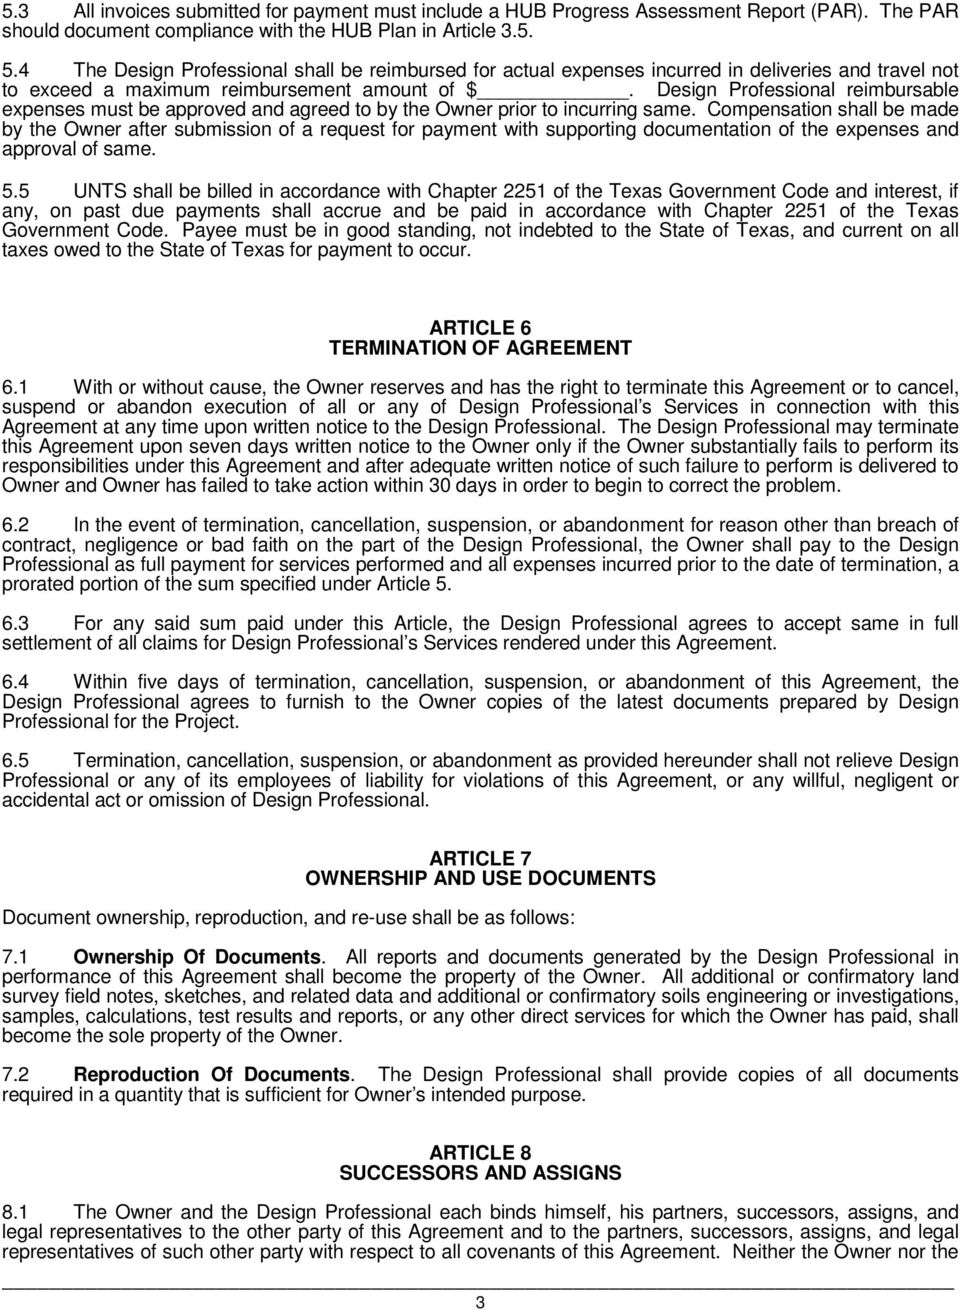 Professional Services Agreement Between University Of North Texas